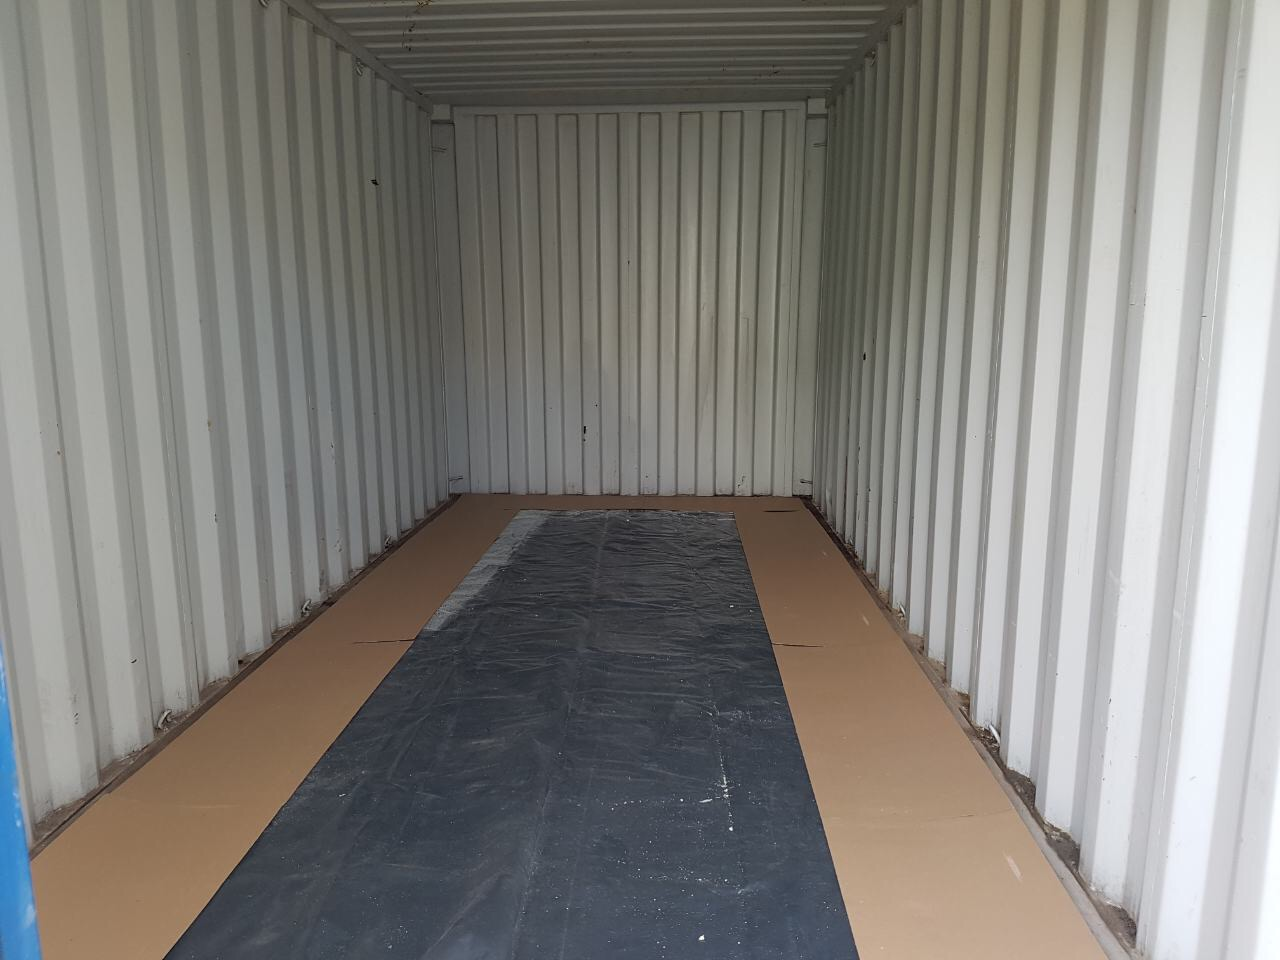 container without spray foam insulation